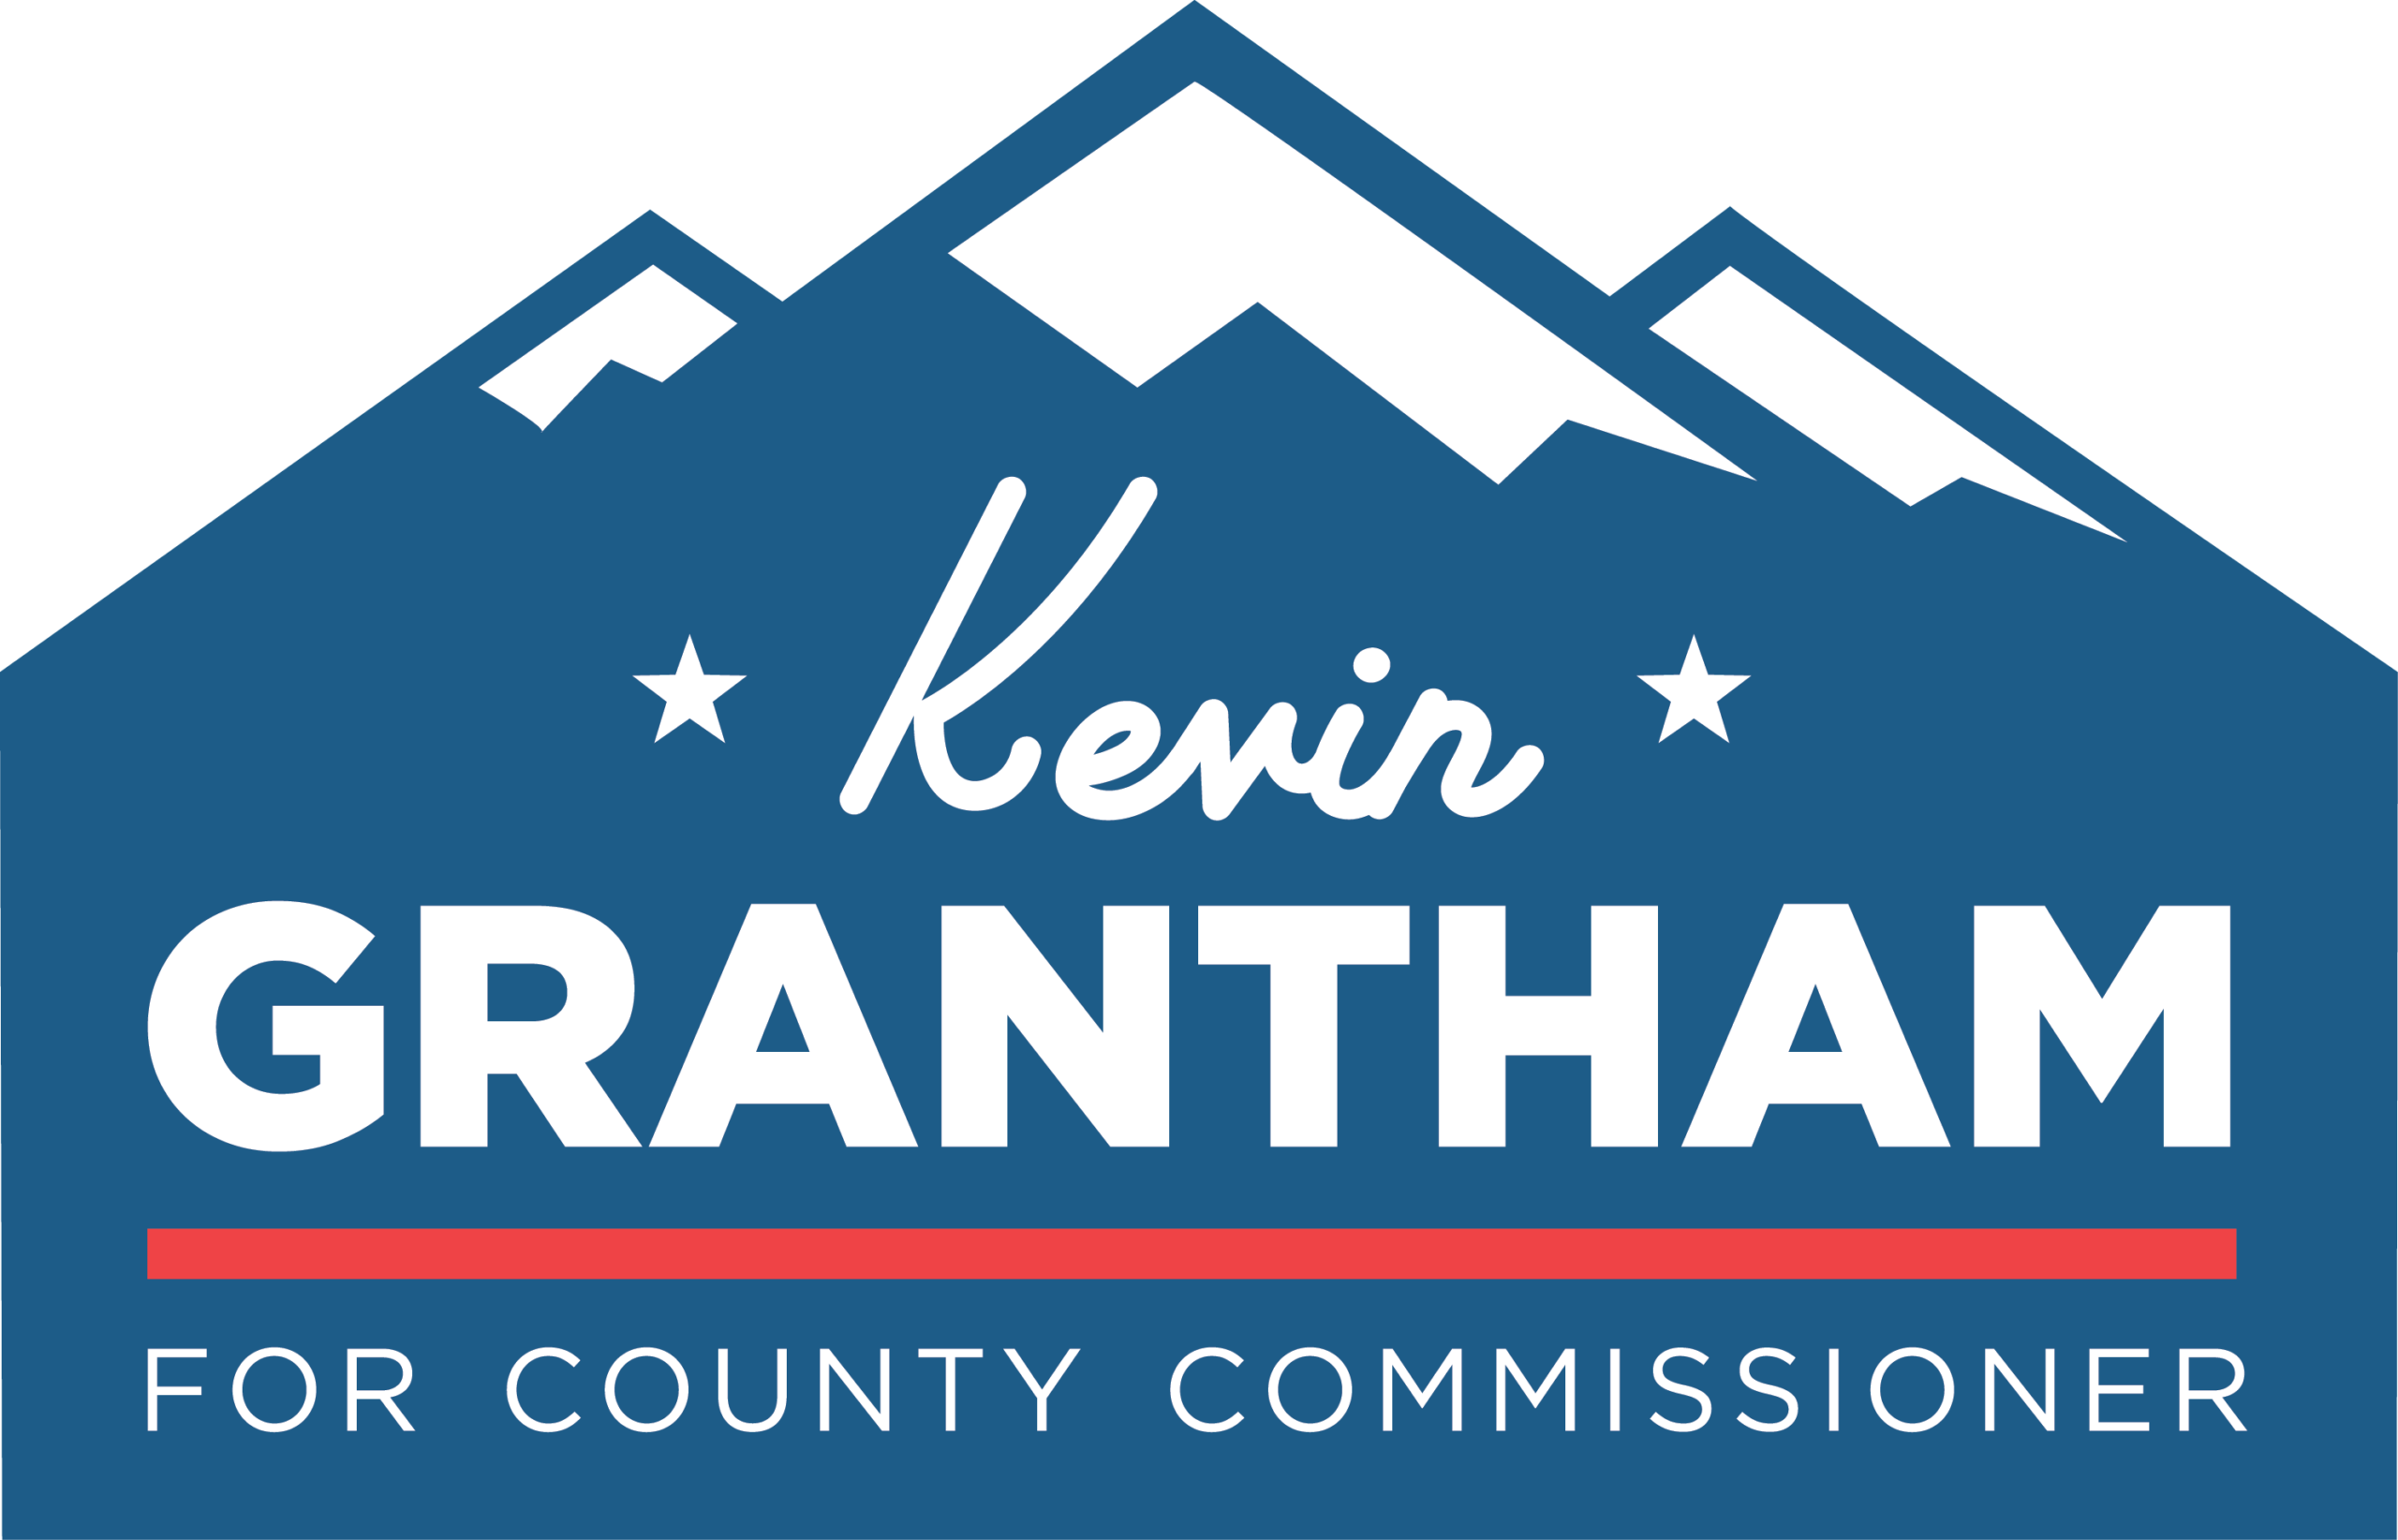 Kevin Grantham for Fremont County Commissioner